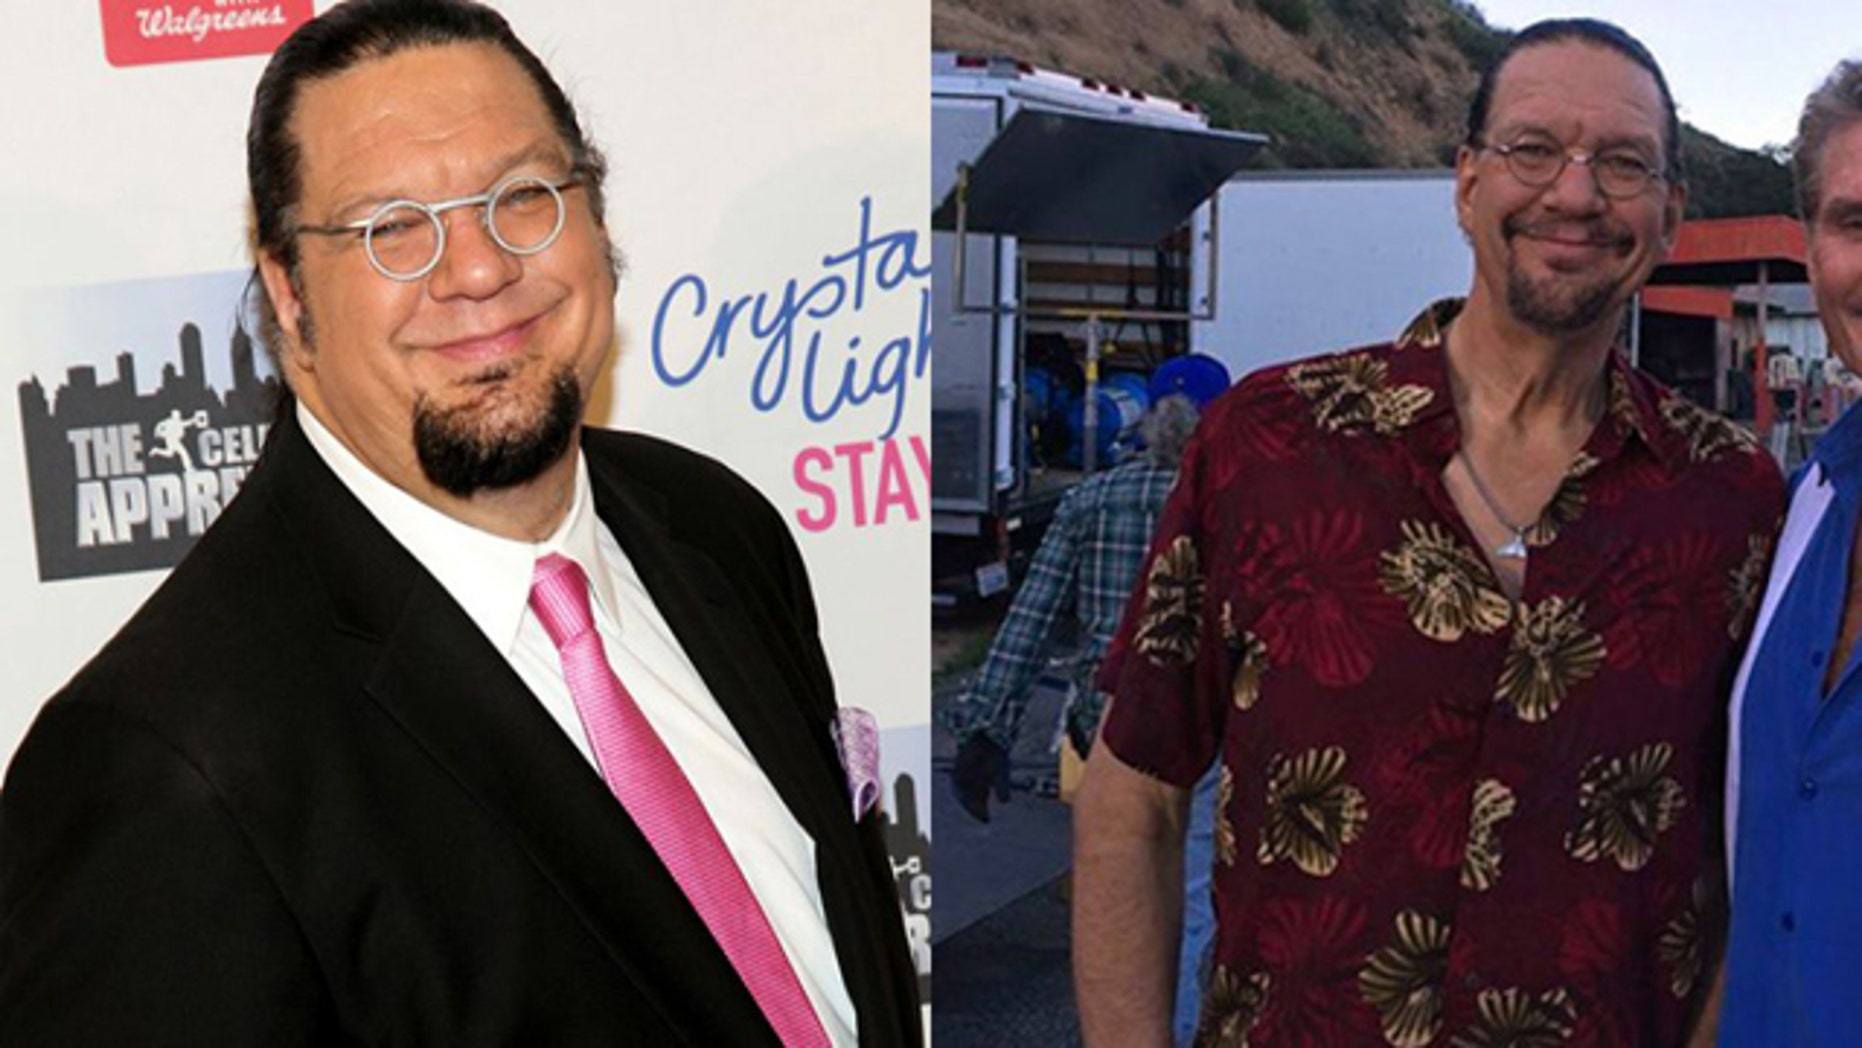 """Illusionist Penn Jillette revealed his dramatic 105 lbs weight loss. Jillette lost the weight in just four months without magic, he said. The 6 foot 7 inch star went from 330 to 225 lbs by drastically changing his eating habits. """"I eat unbelievable amounts of food but just very, very, very healthy food,"""" the magician told People. (Getty/Twitter)"""